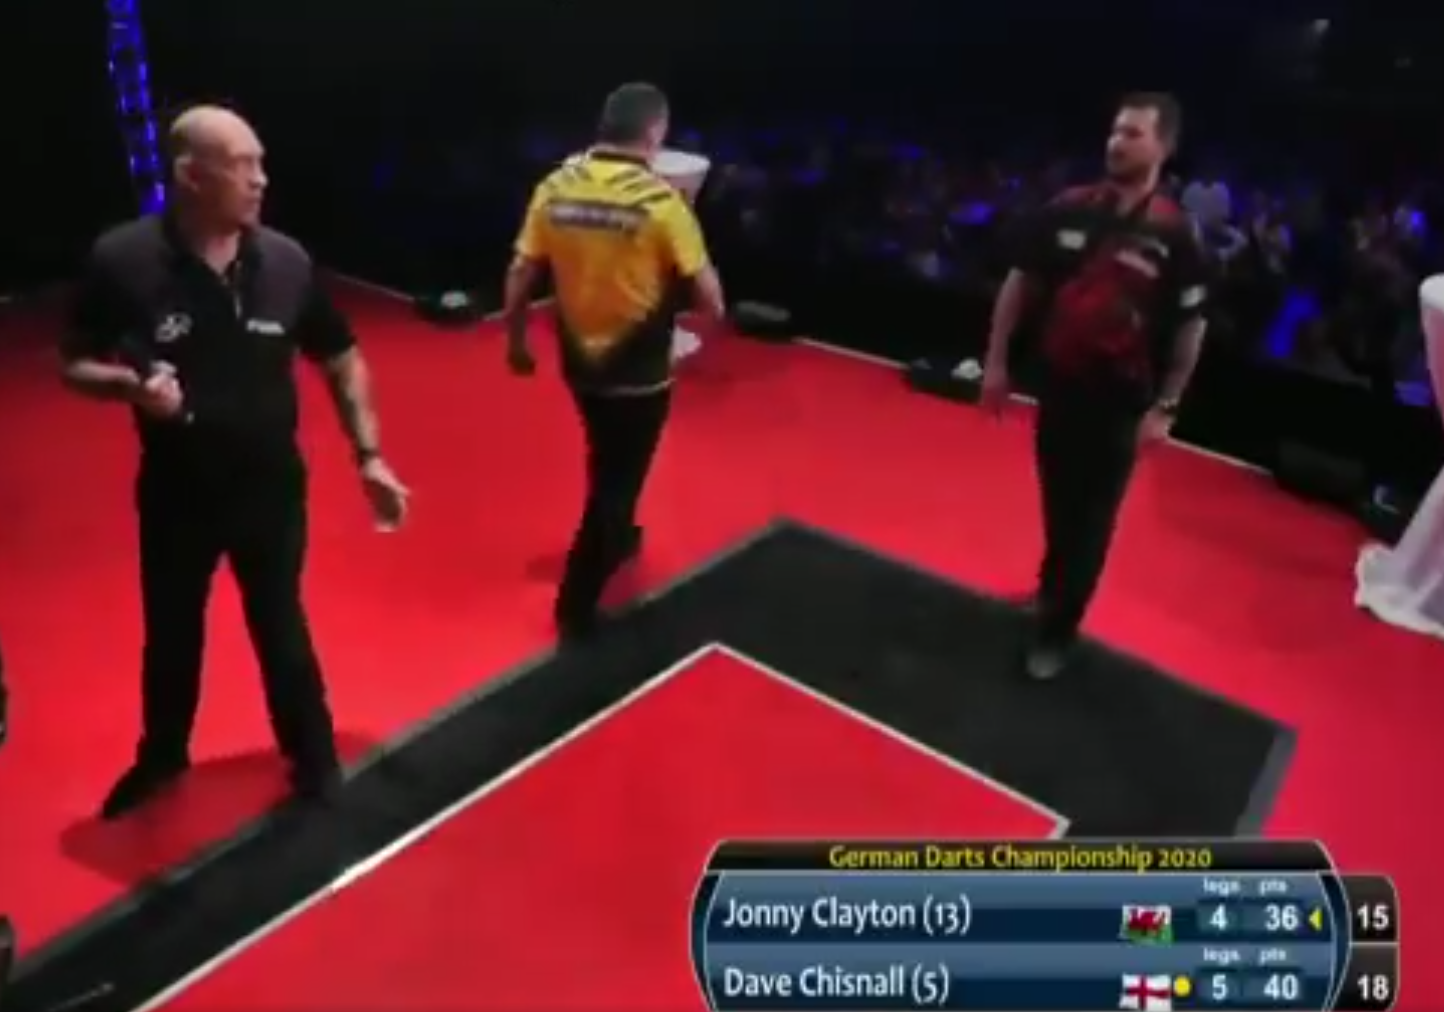 VIDEO: Russ Bray's Horrible Miscount At German Darts Championship